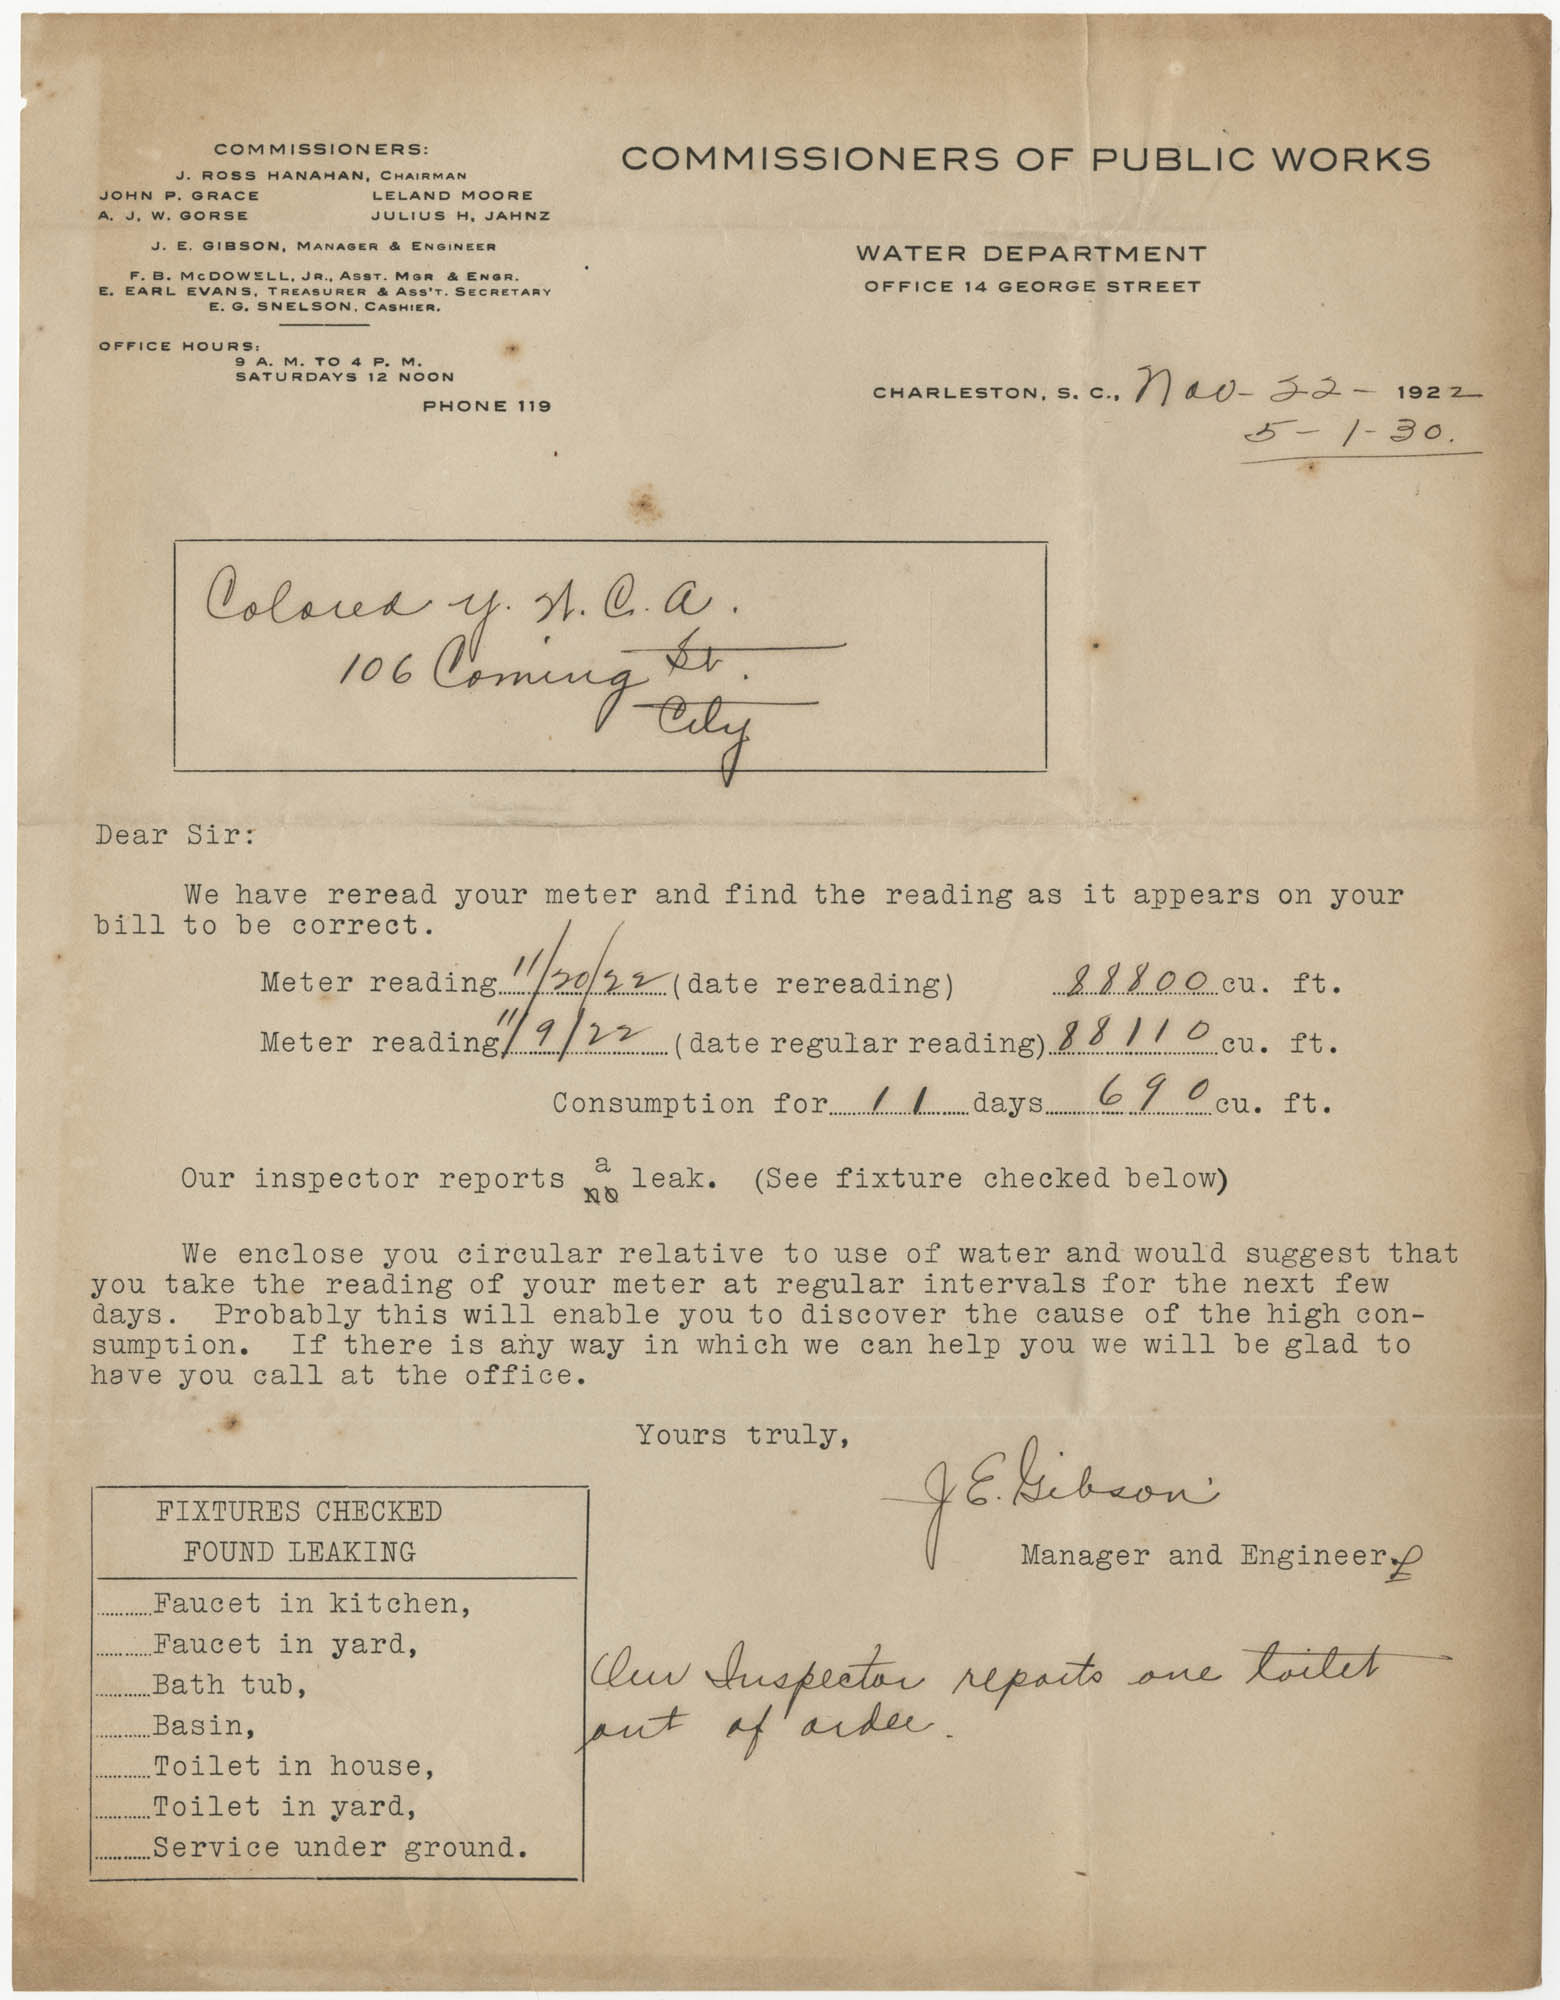 Letter from J. E. Gibson to Coming Street Y.W.C.A., November 22, 1927